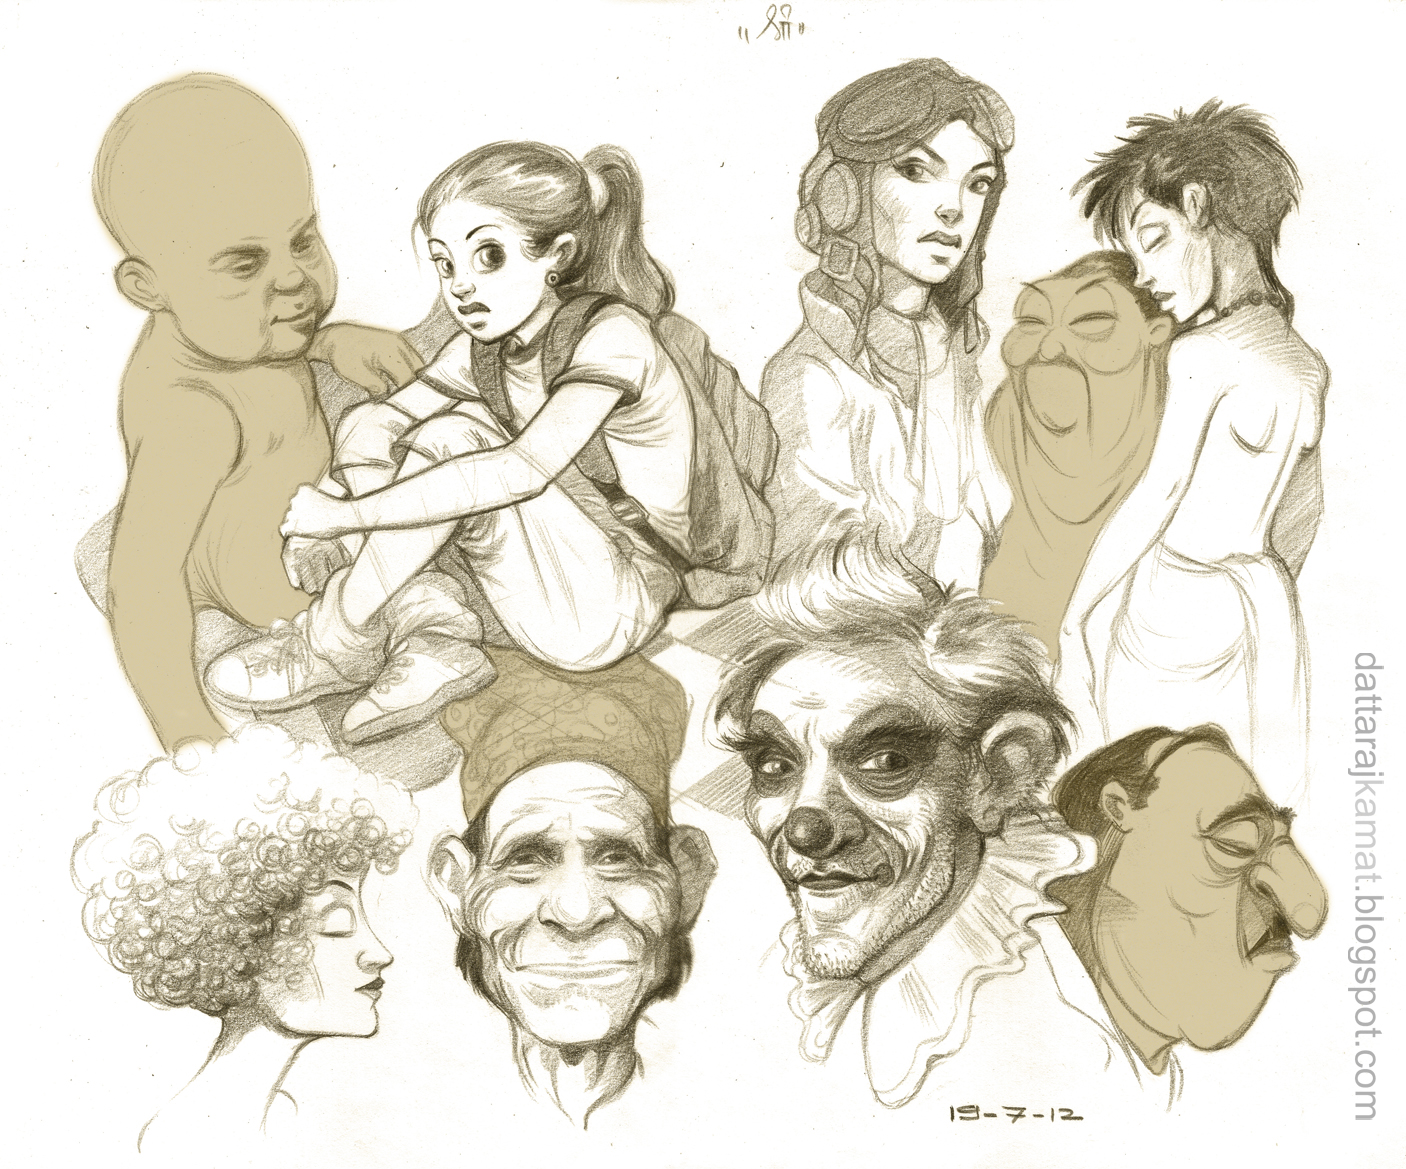 Character Design From Life Drawing : Dattaraj kamat animation art today s sketches